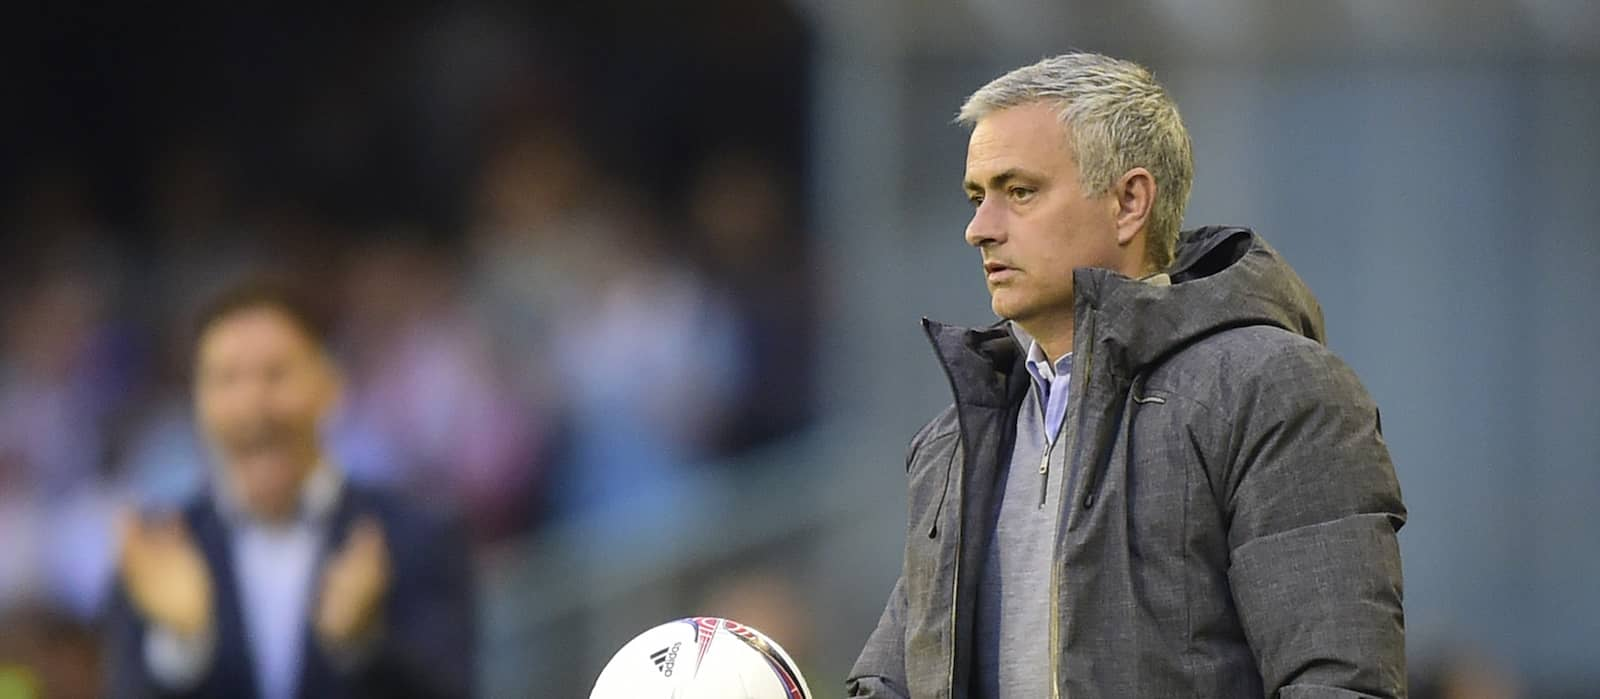 Jose Mourinho reacts to beating Real Madrid on penalties